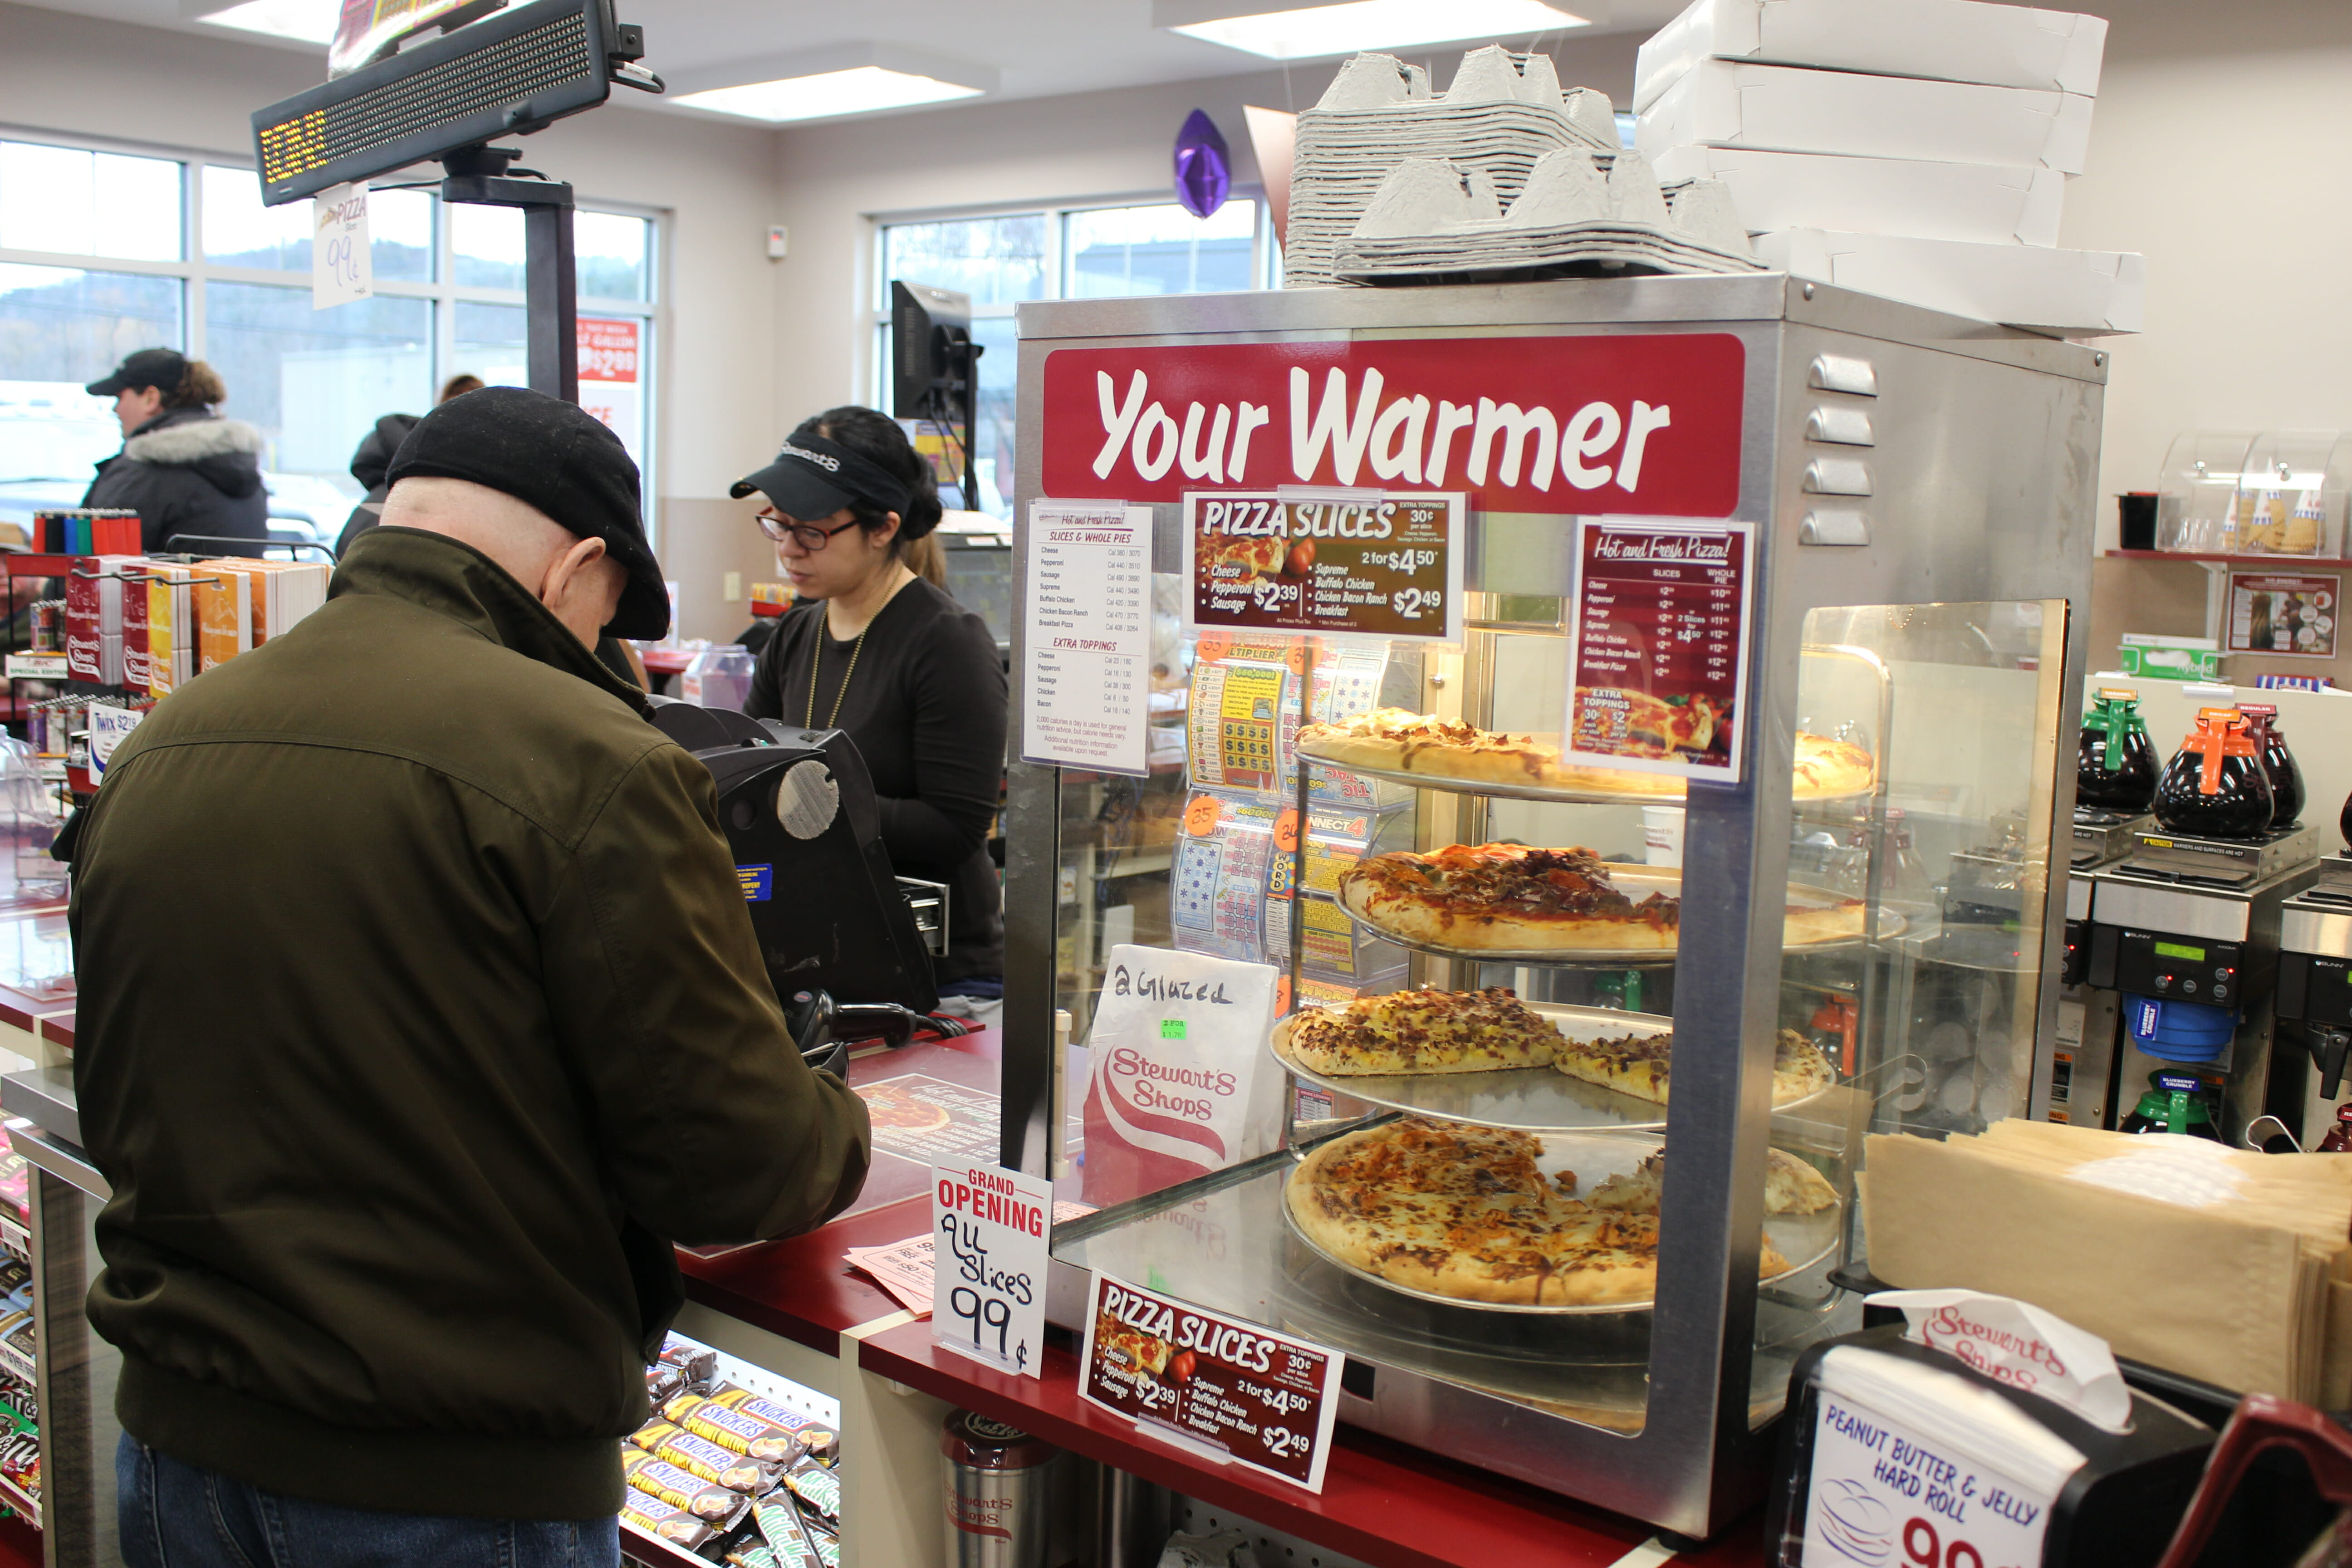 the pizza warmer full of pizza pies and a customer checking out at the new shop